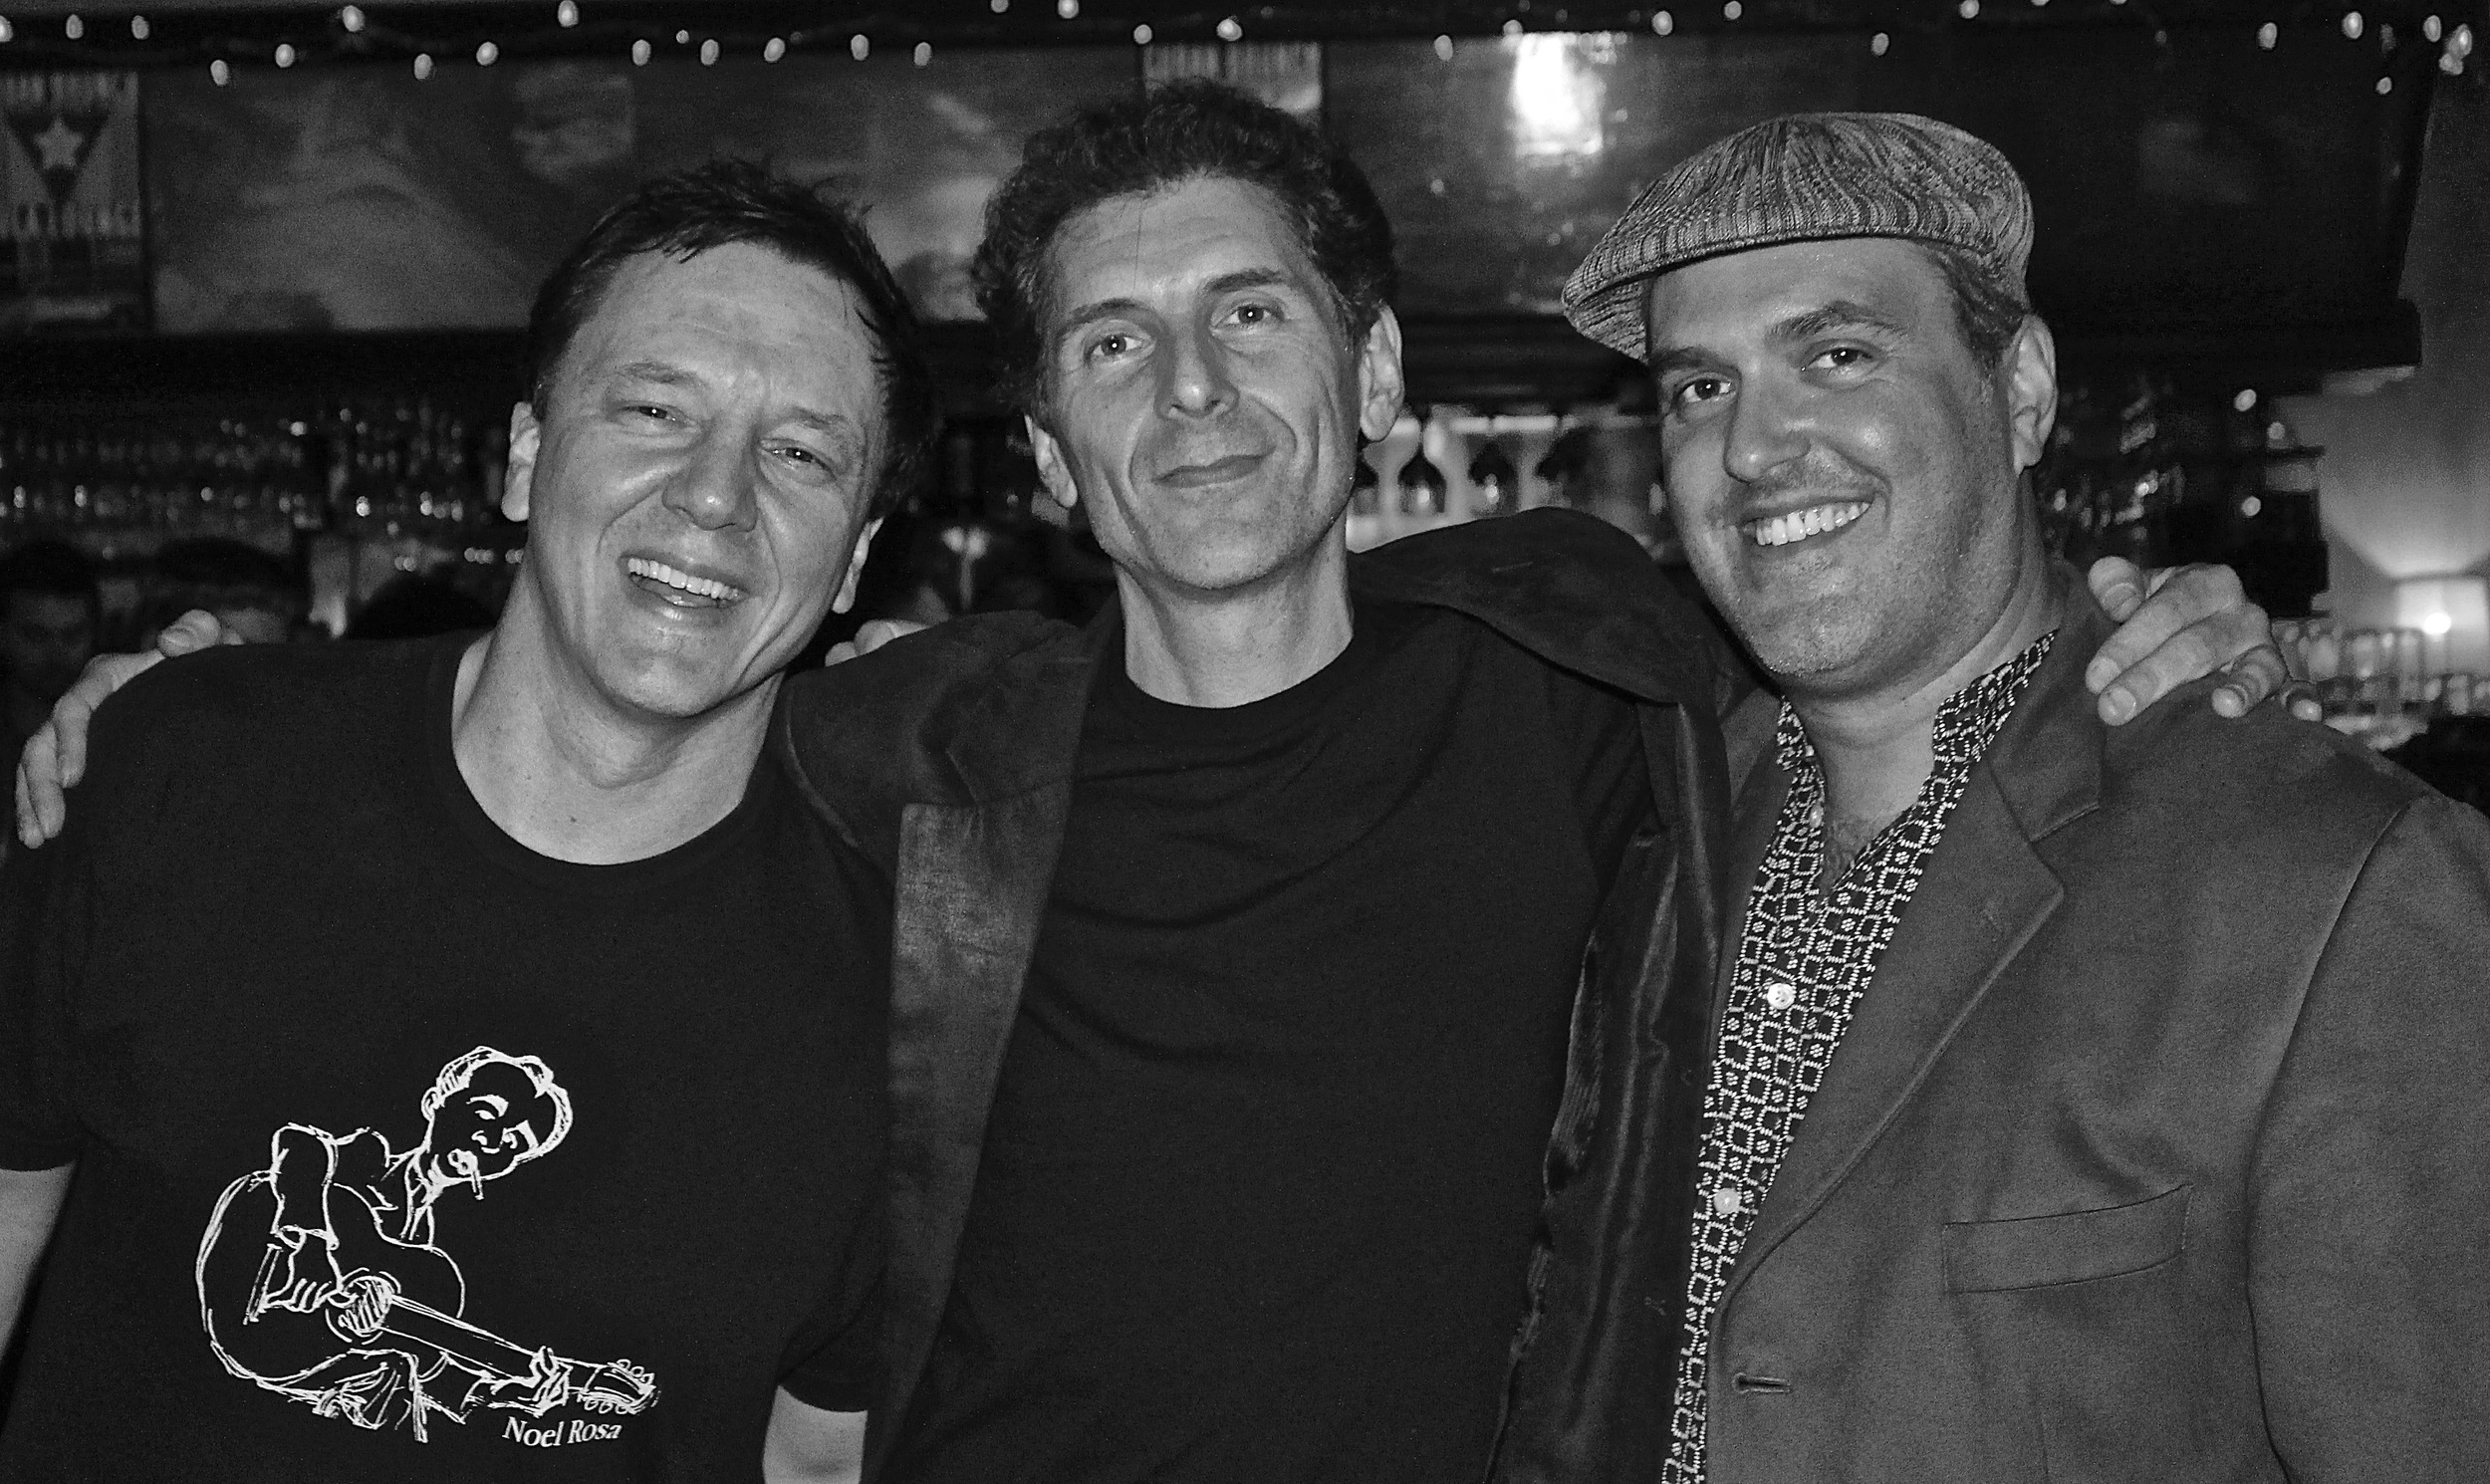 With percussionist Alan Hetherington and bassist Louis Simao in Toronto